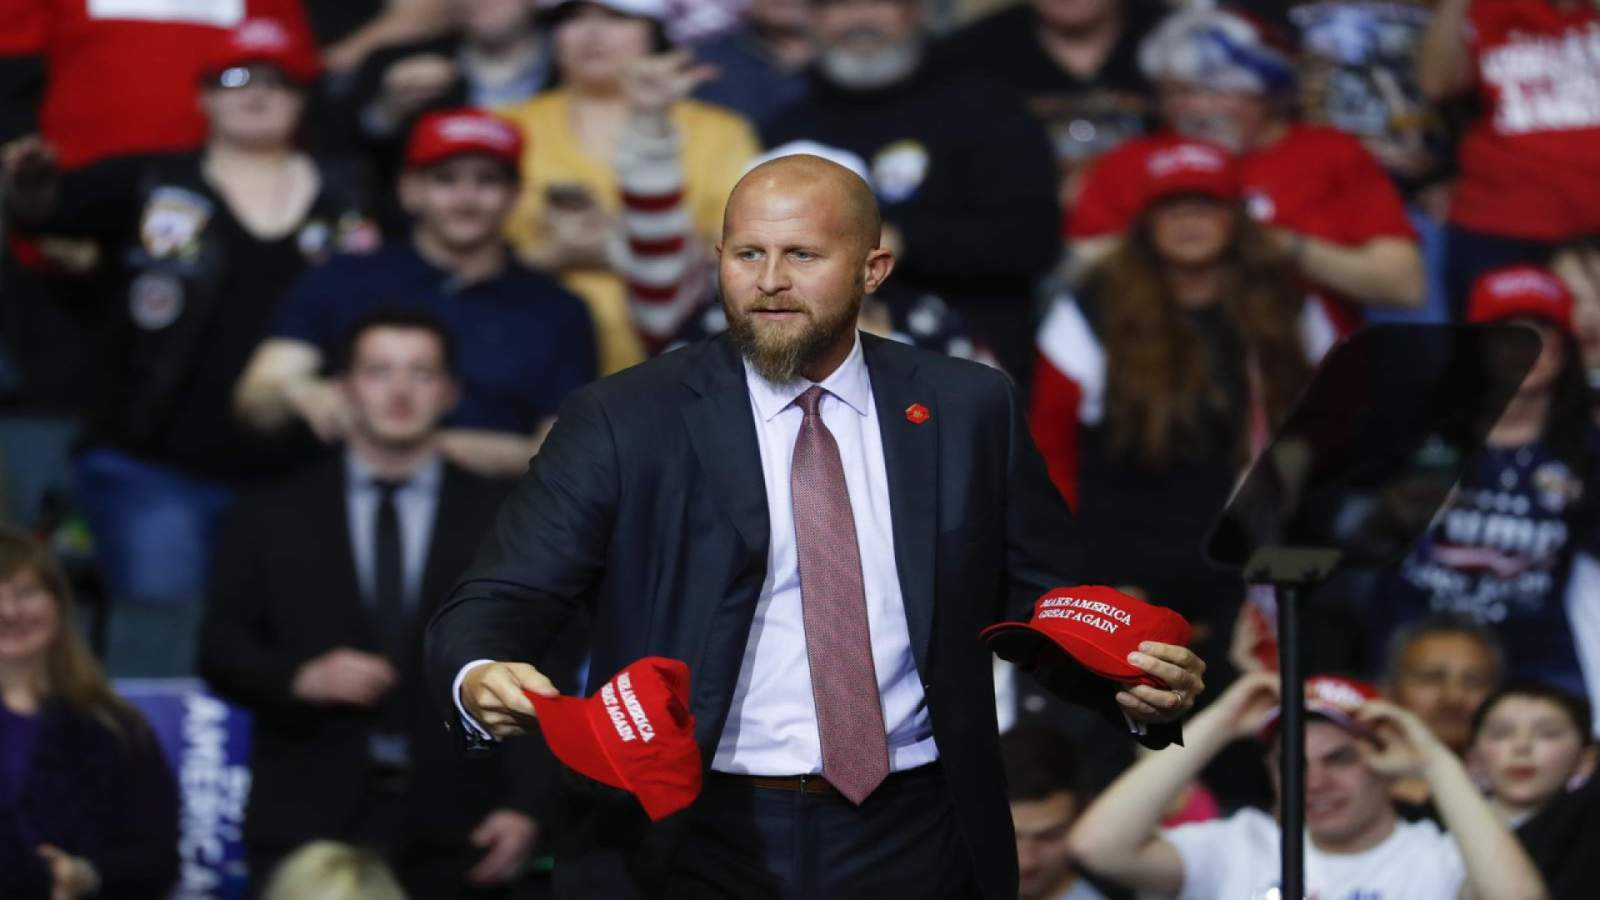 Ex-Trump campaign manager Brad Parscale hospitalized; was armed and threatening himself in Fort Lauderdale home